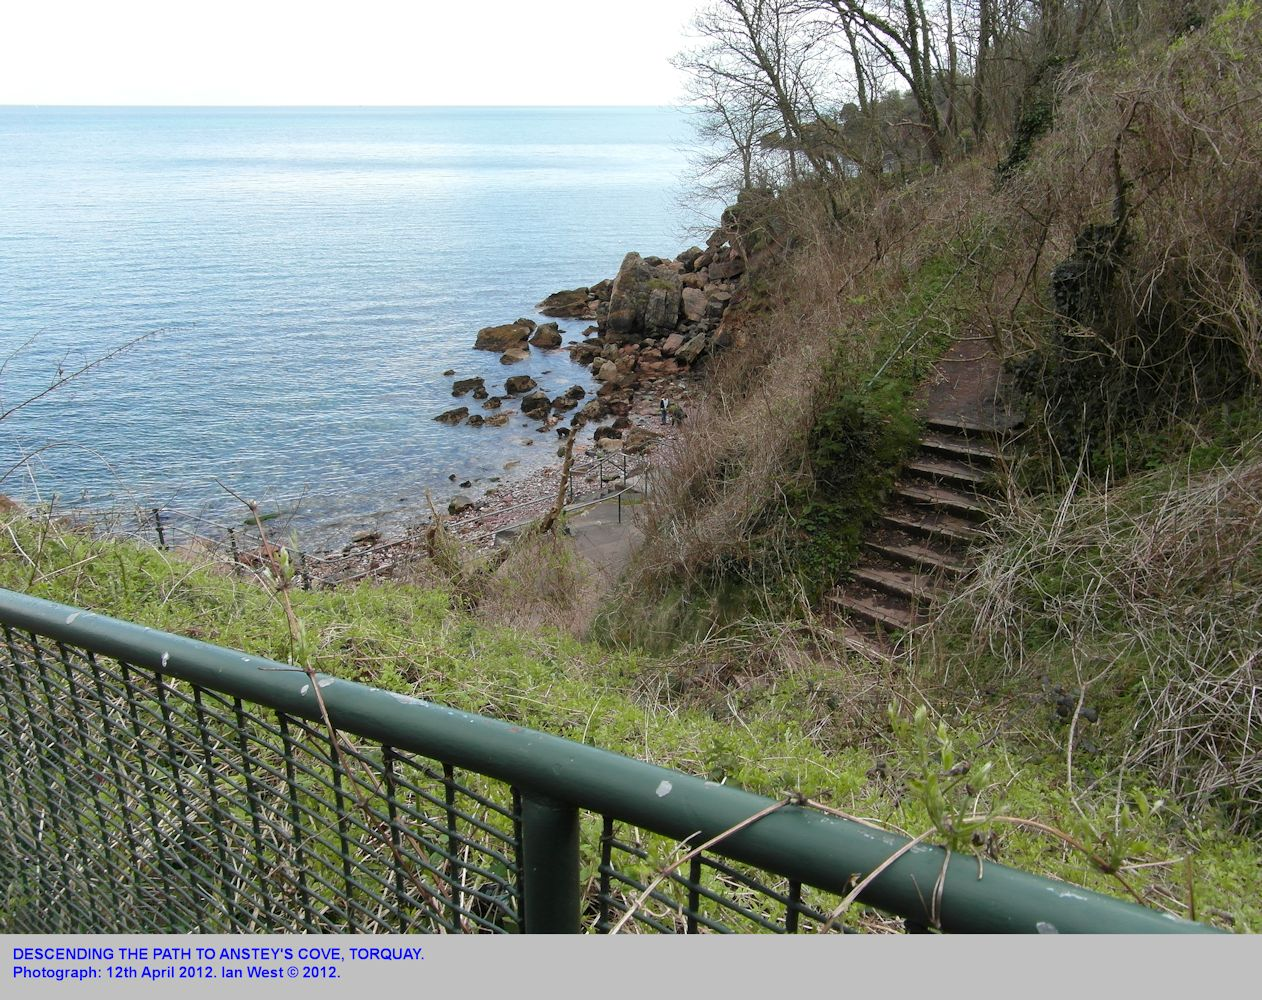 Descending the path to Anstey's Cove, Torquay, Devon, April 2012